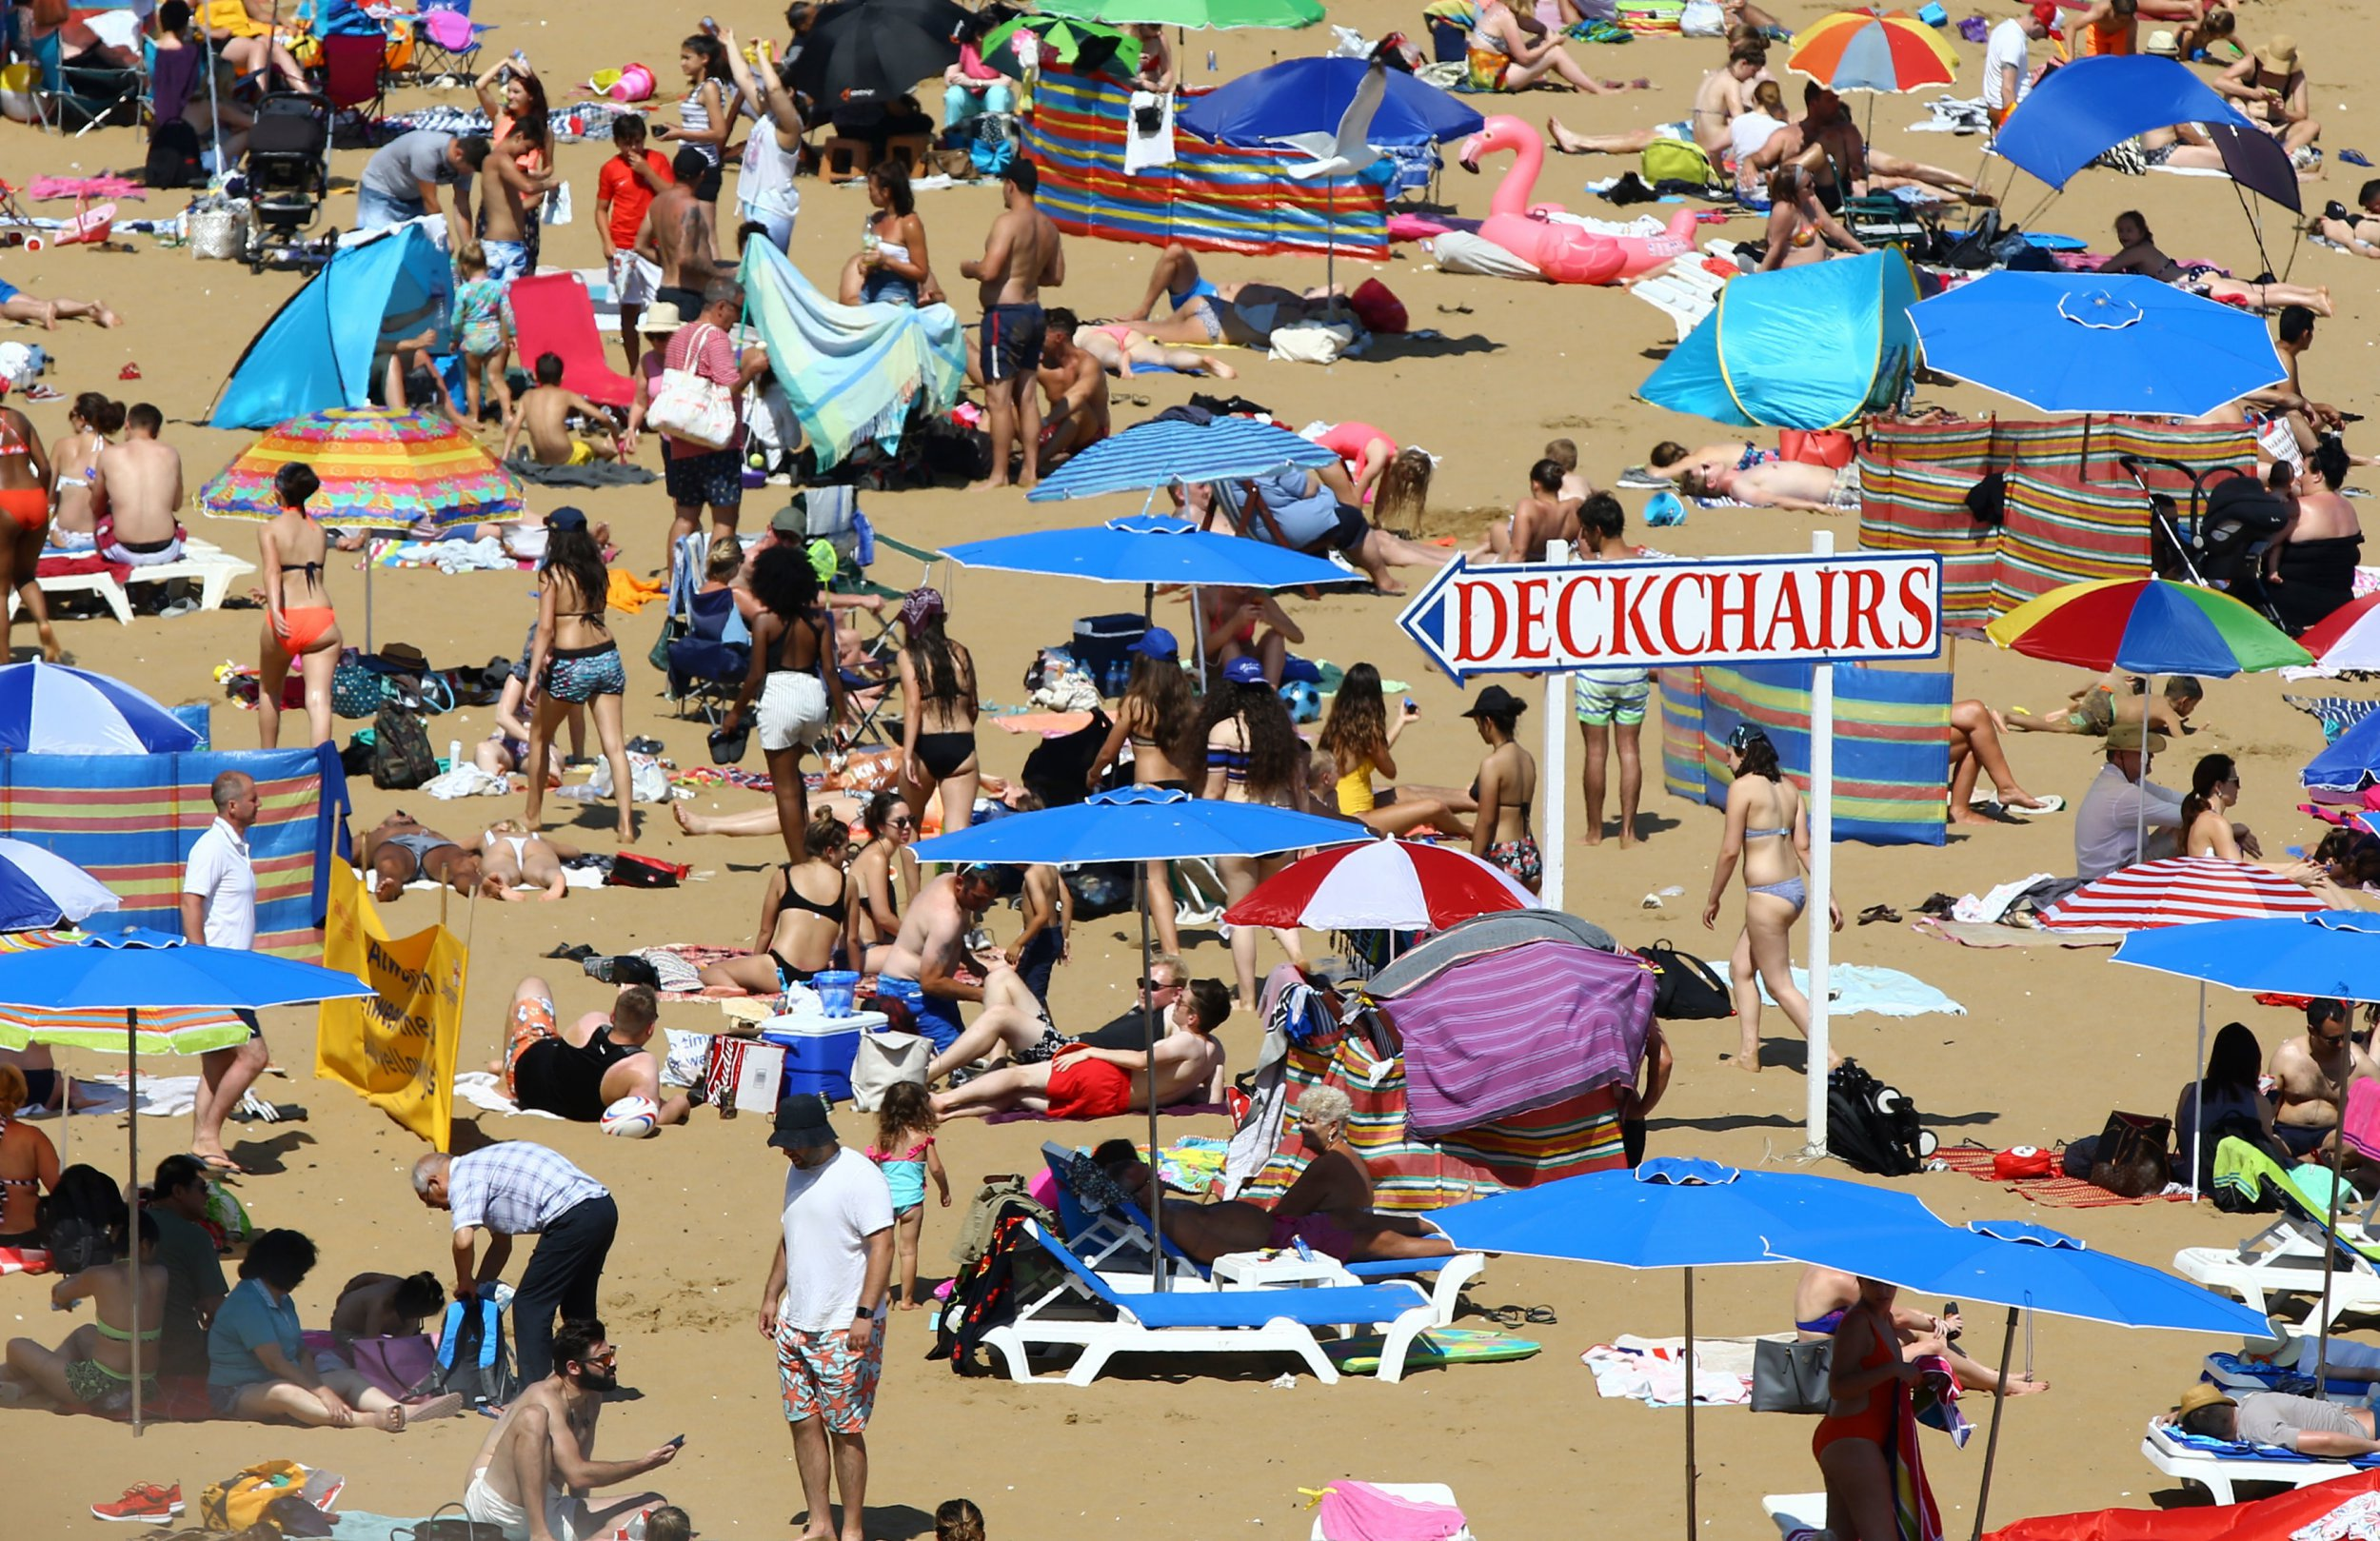 People enjoy the beach in Broadstairs, Kent, as the warm weather continues across the country. PRESS ASSOCIATION Photo. Picture date: Sunday July 8, 2018. Photo credit should read: Gareth Fuller/PA Wire